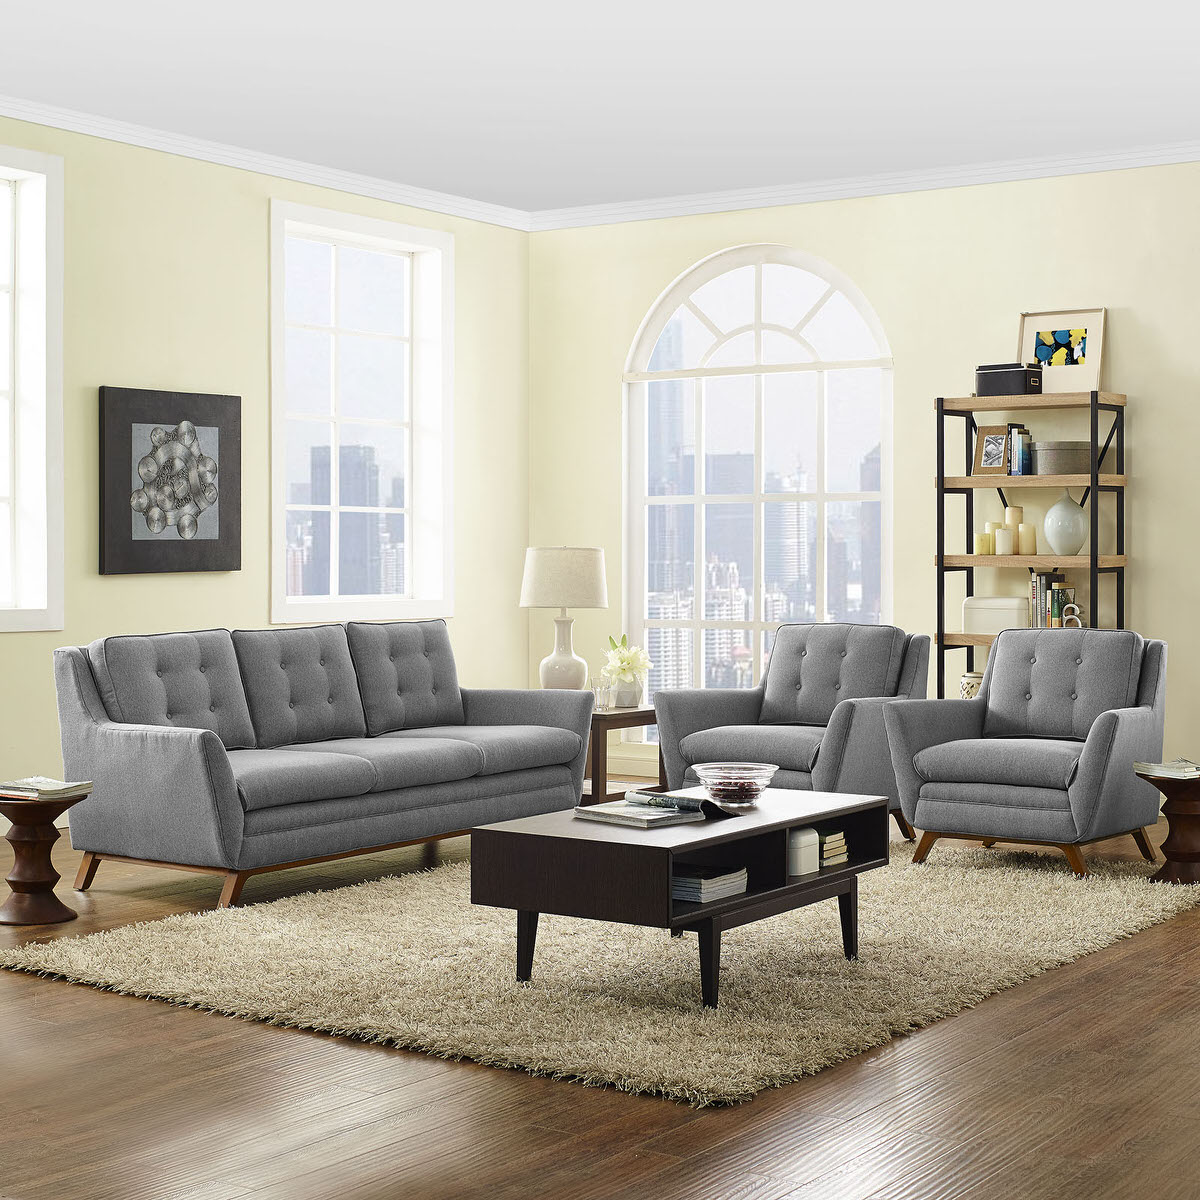 Beguile 3 Piece Upholstered Fabric Living Room Set Expectation Gray ...